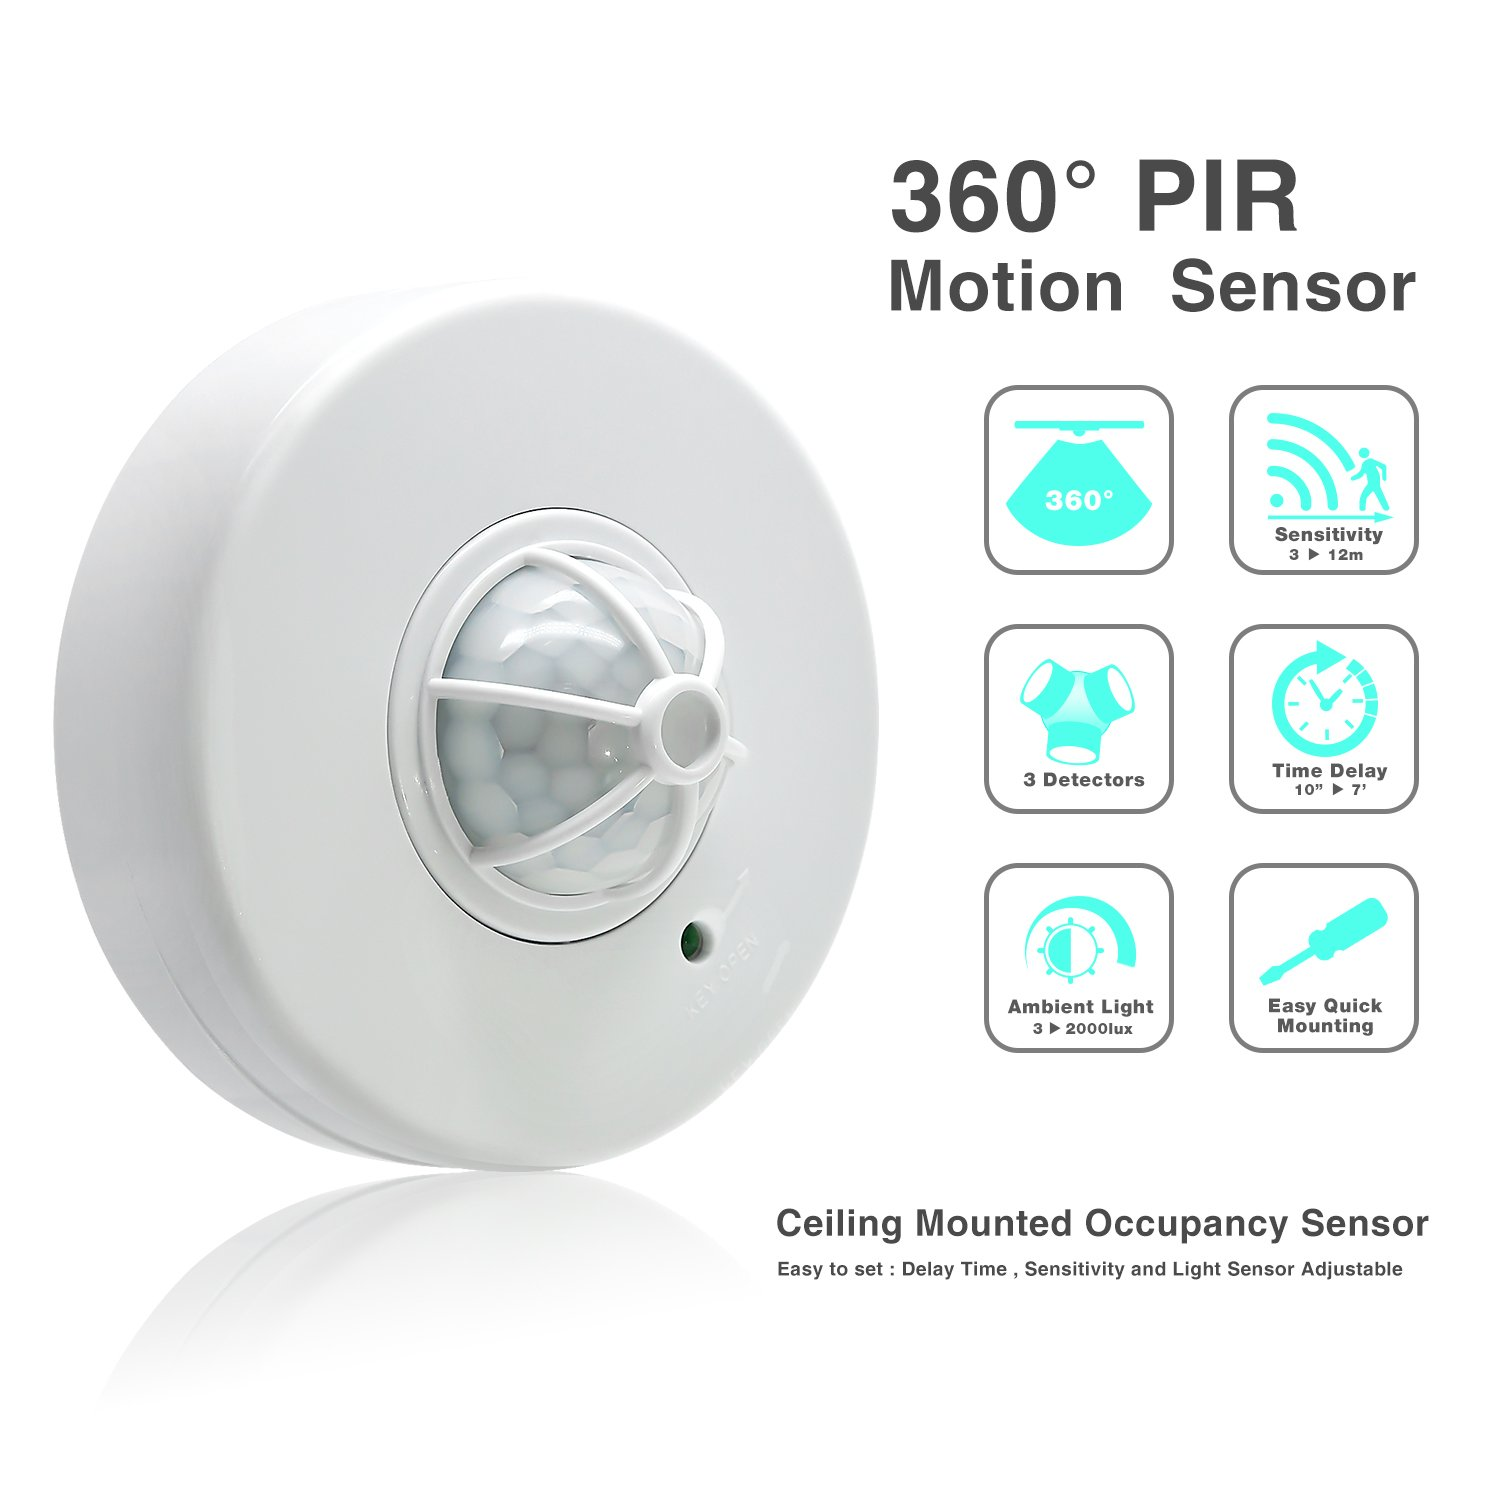 Sensky 360 Degree Ceiling Mounted Occupancy Sensor High Lutron Lighting Wiring Diagram Sensitivity Motion Switch With 3 Detectors Time Distance And Light Adjustable